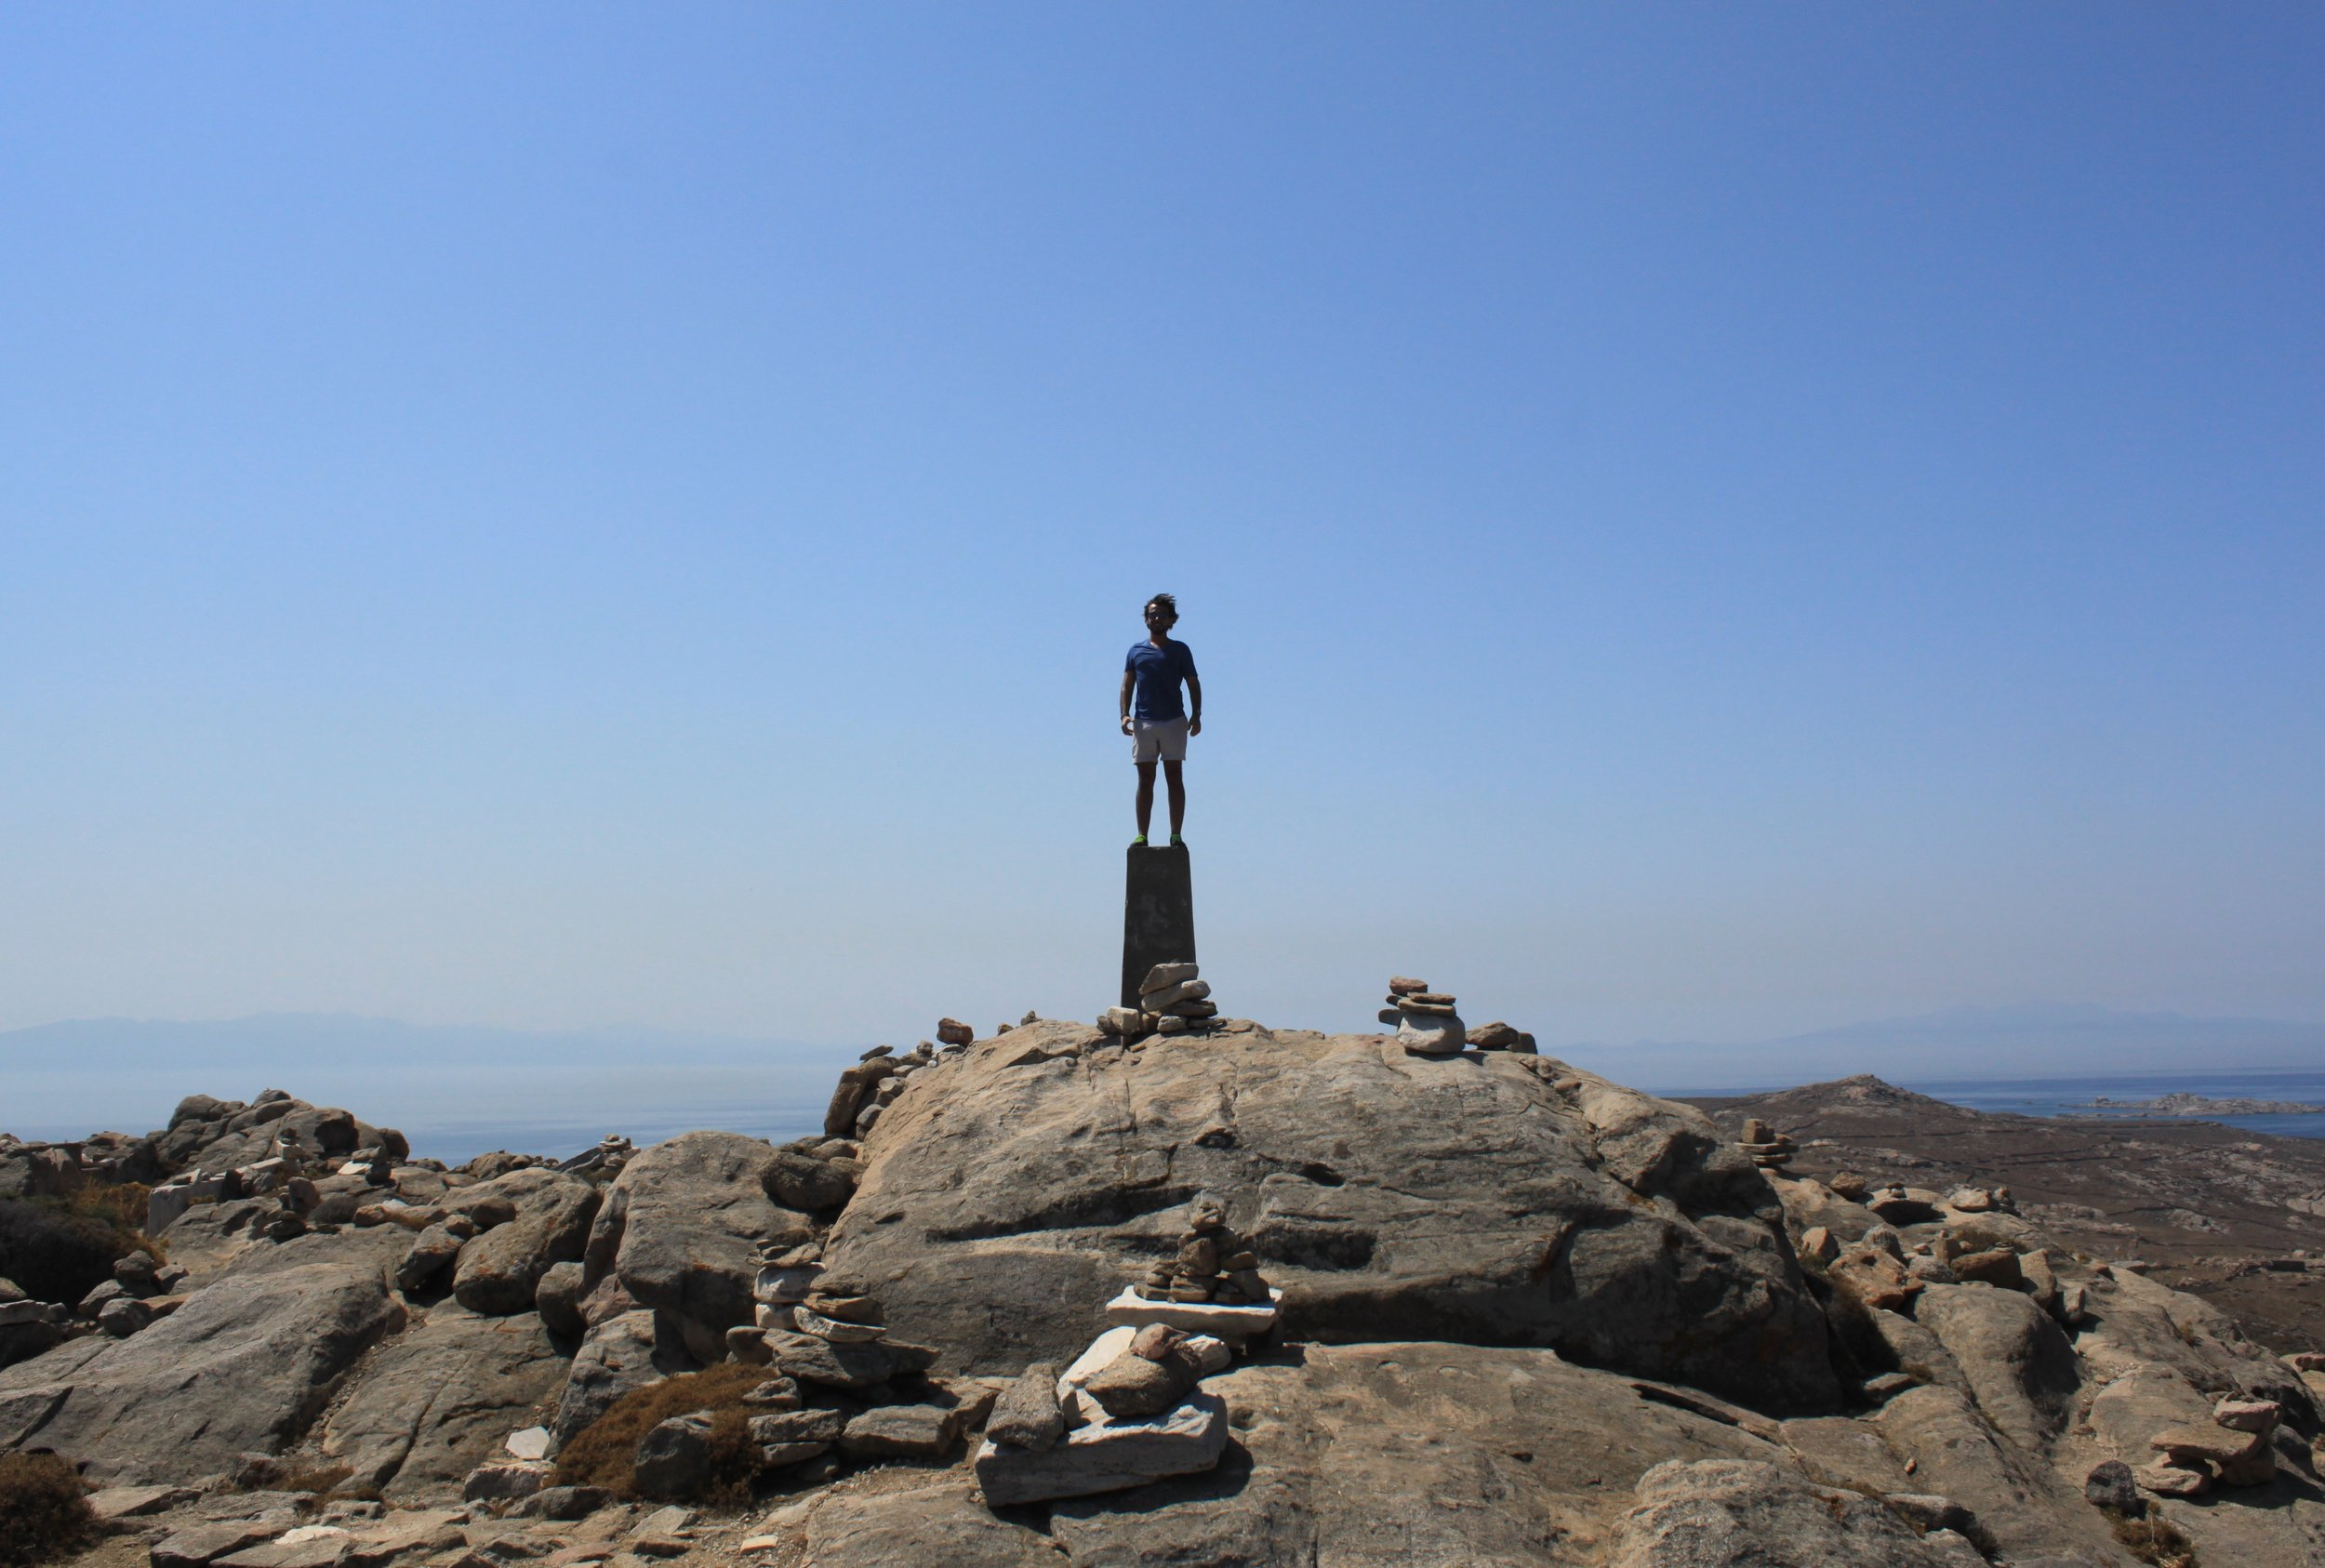 Standing on the tallest point of the archaeological island of Delos.